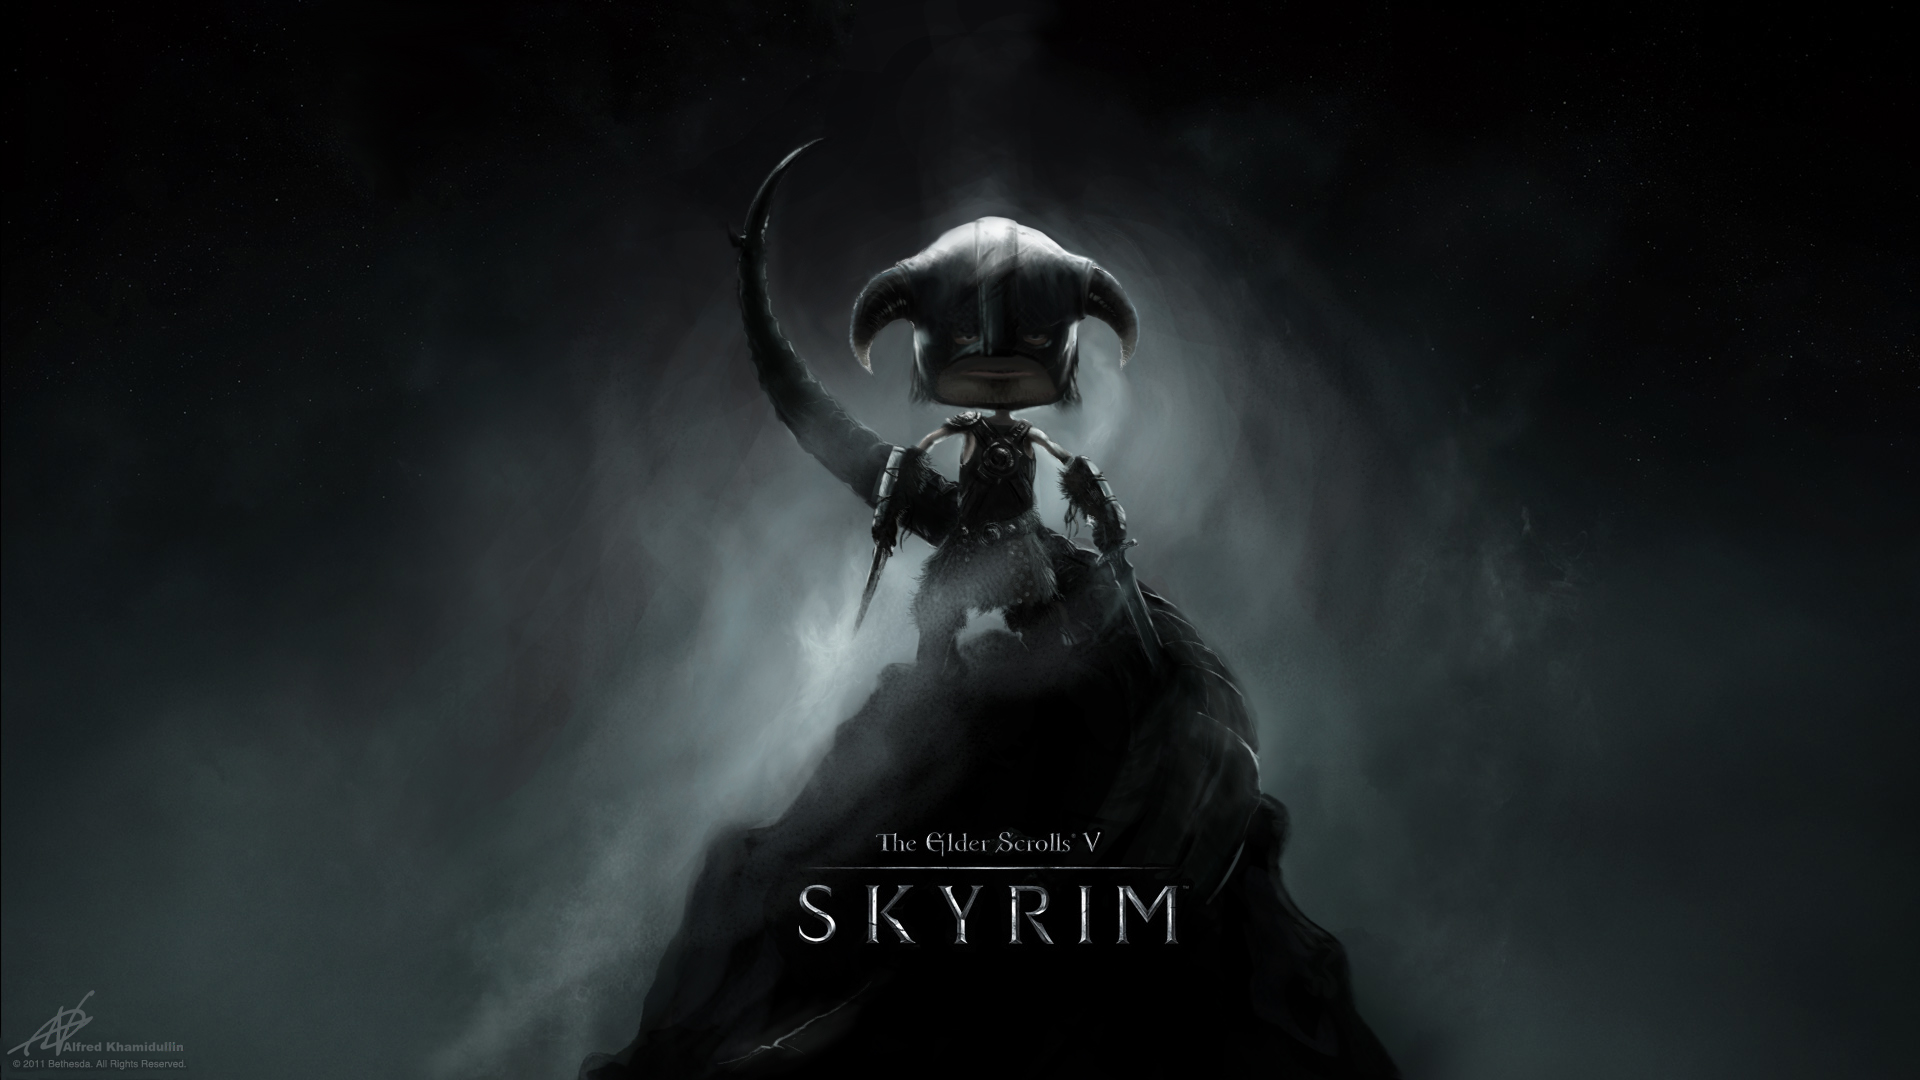 skyrim wallpaper - official and my vision of